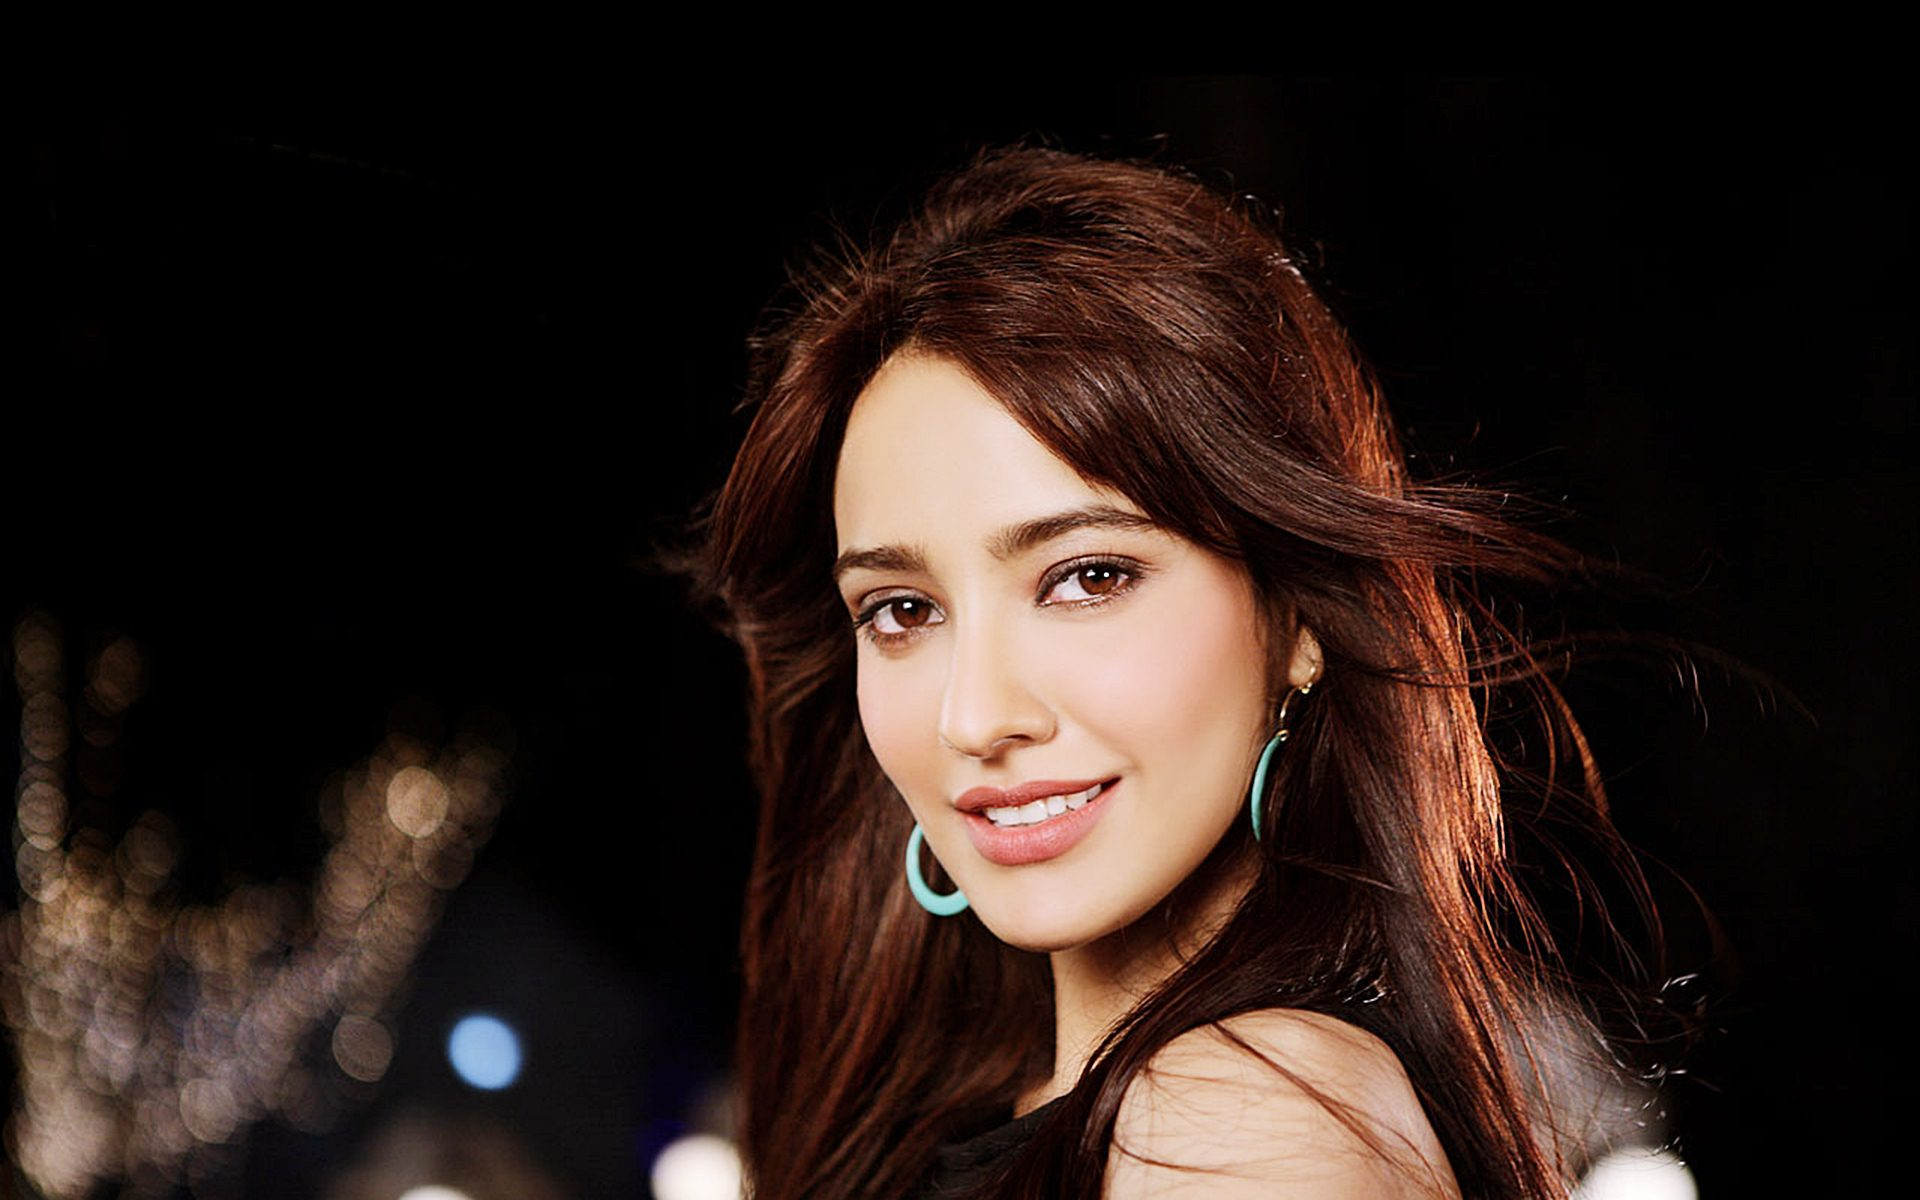 Neha Sharma Wallpapers Images Photos Pictures Backgrounds